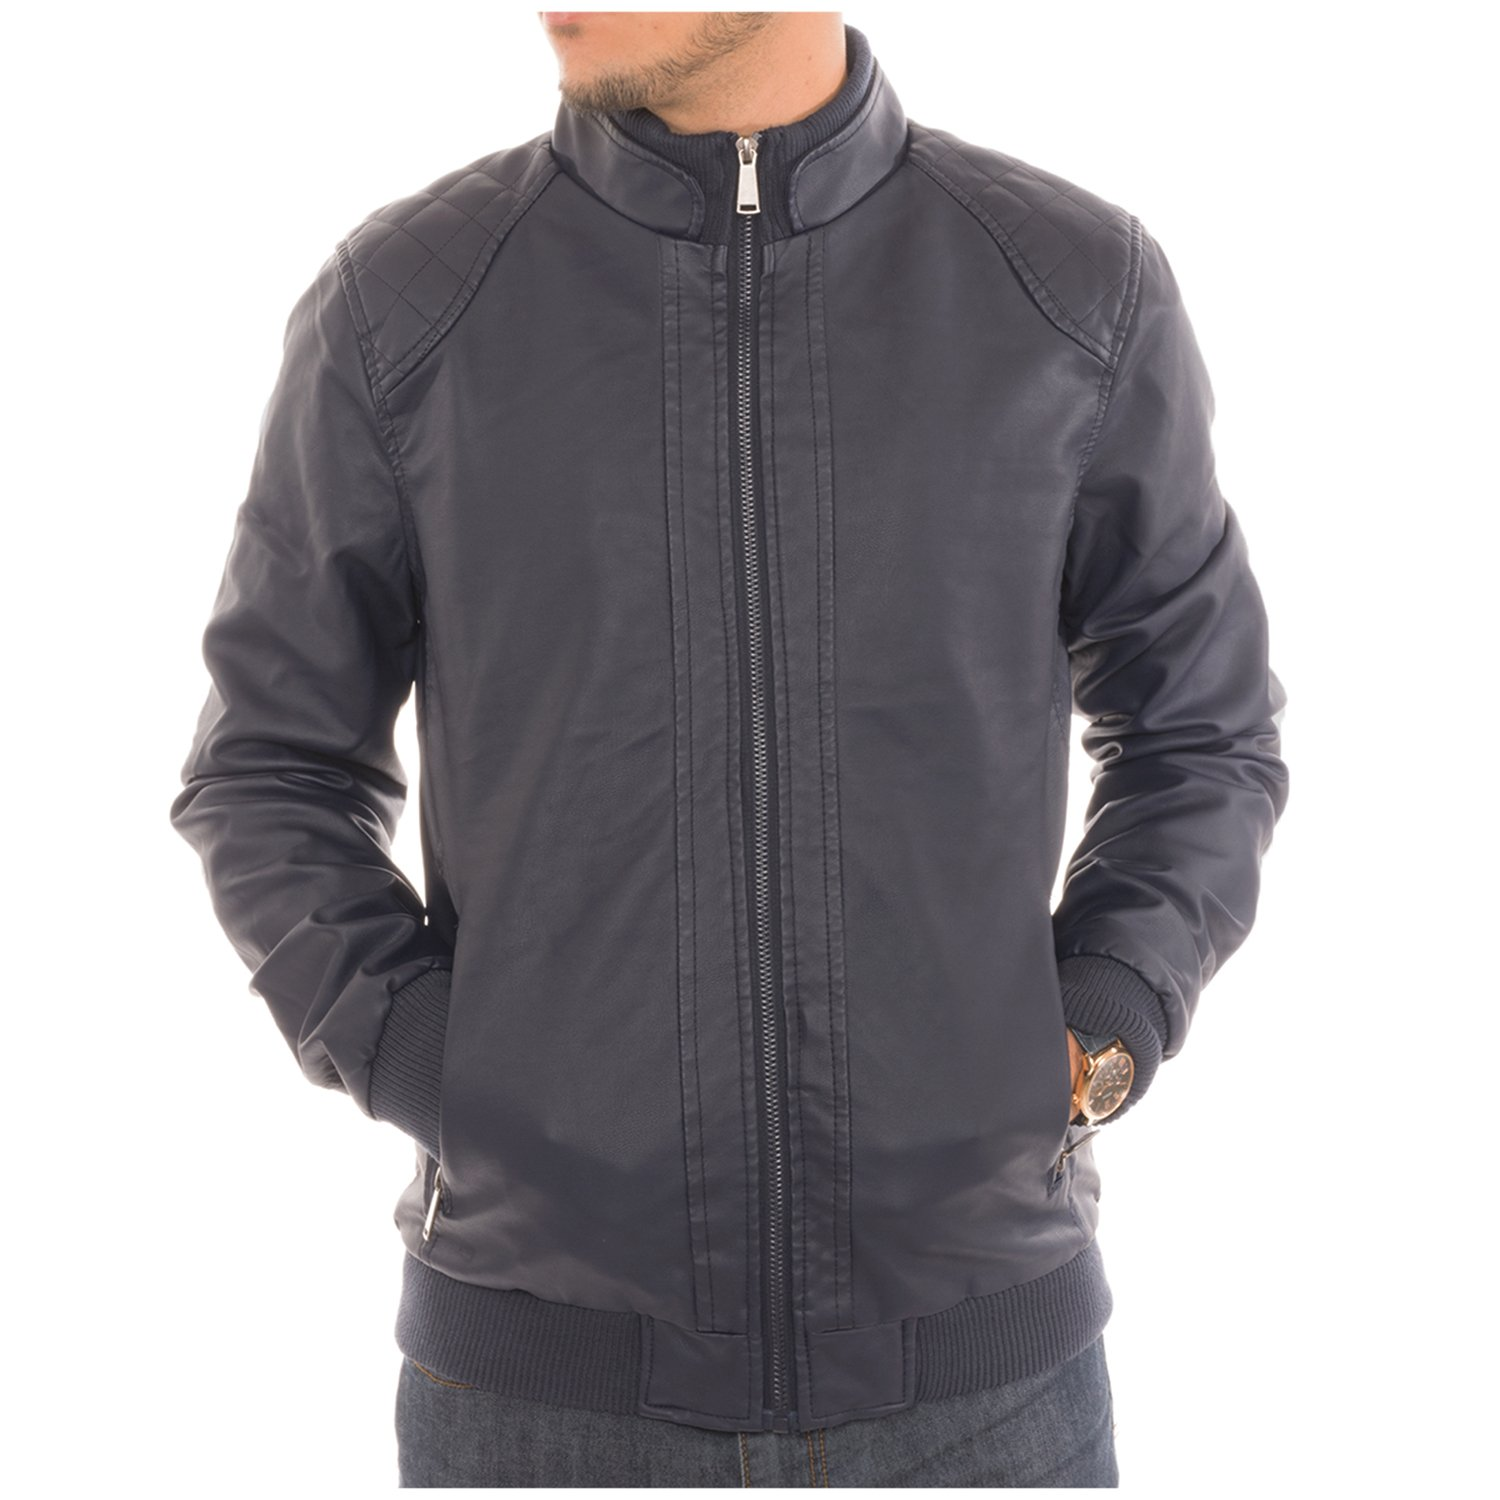 Men's Motorcycle Bomber Faux Leather Jacket Fleece Lined with Zippered Pockets - Navy - S